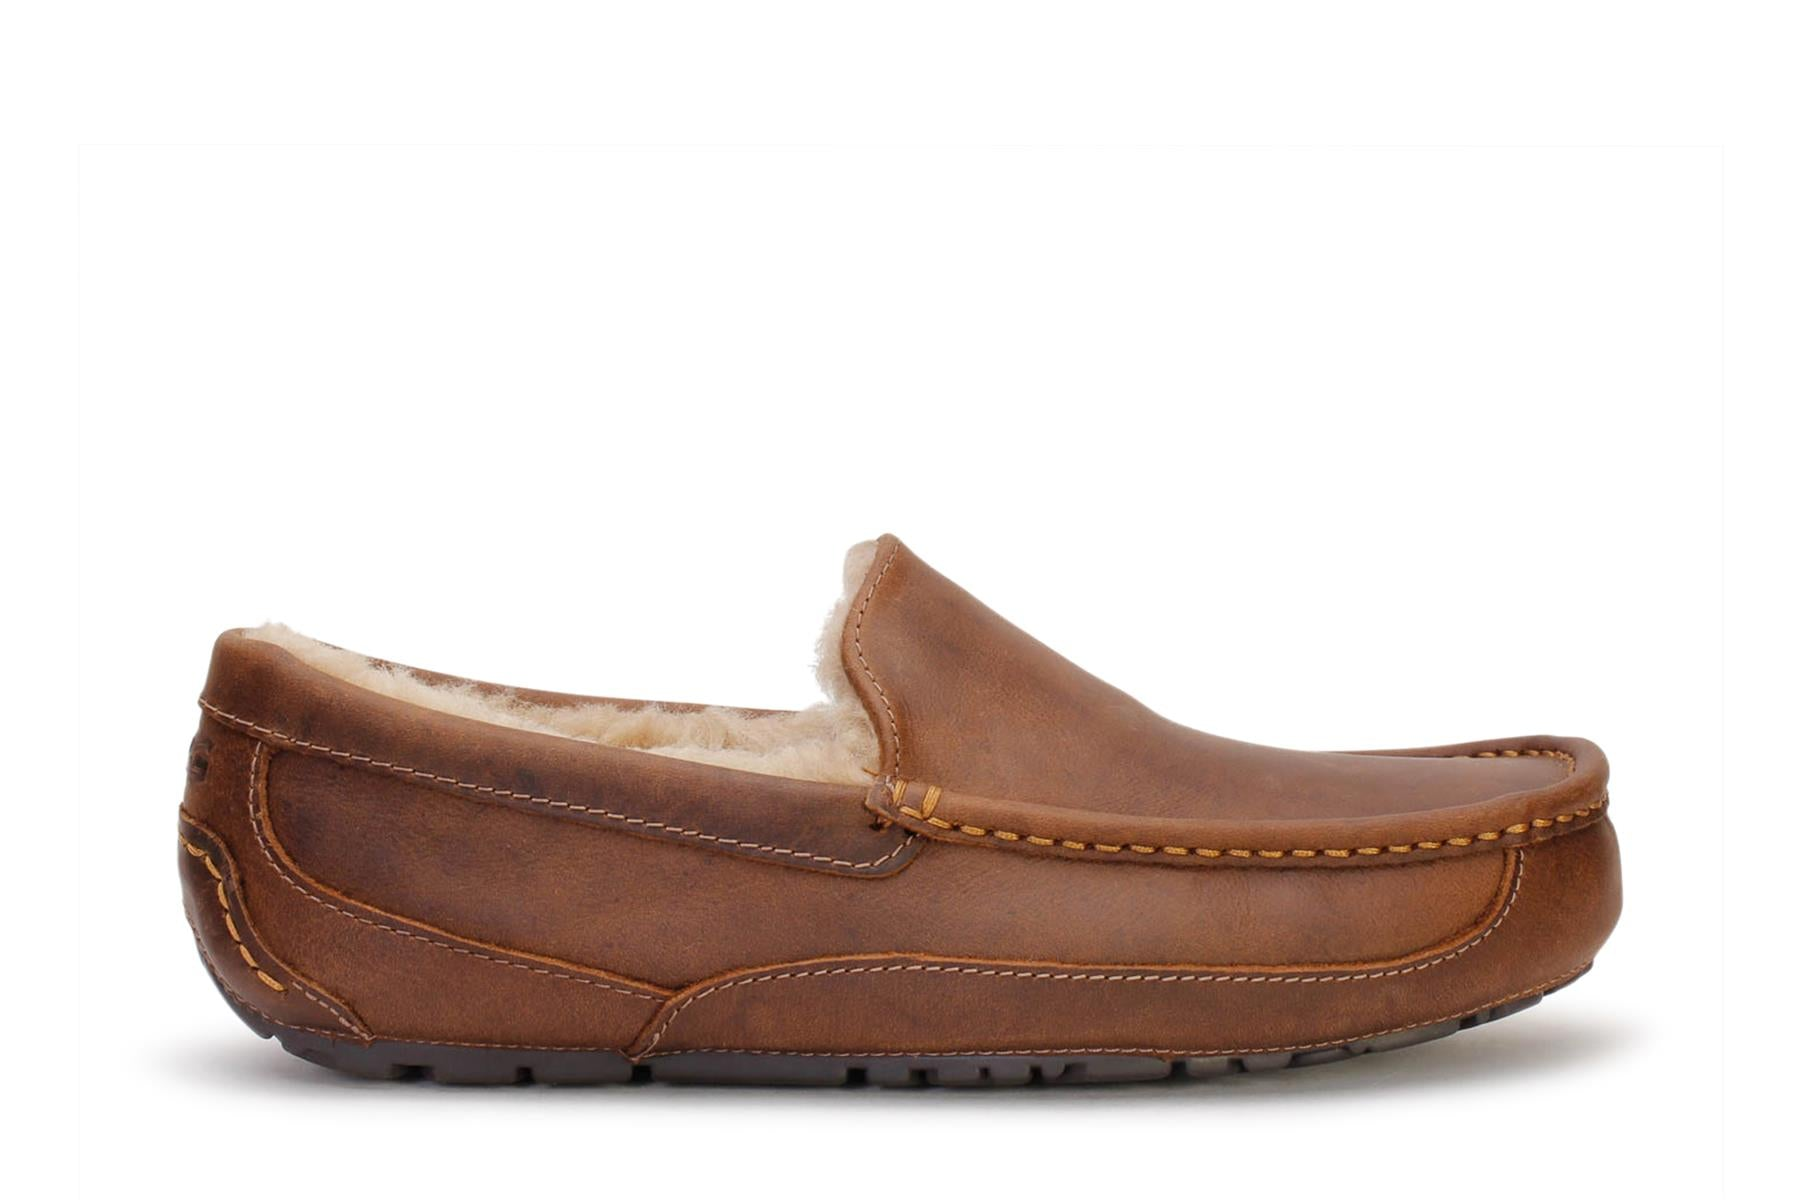 ugg-mens-ascot-slipper-tan-leather-main